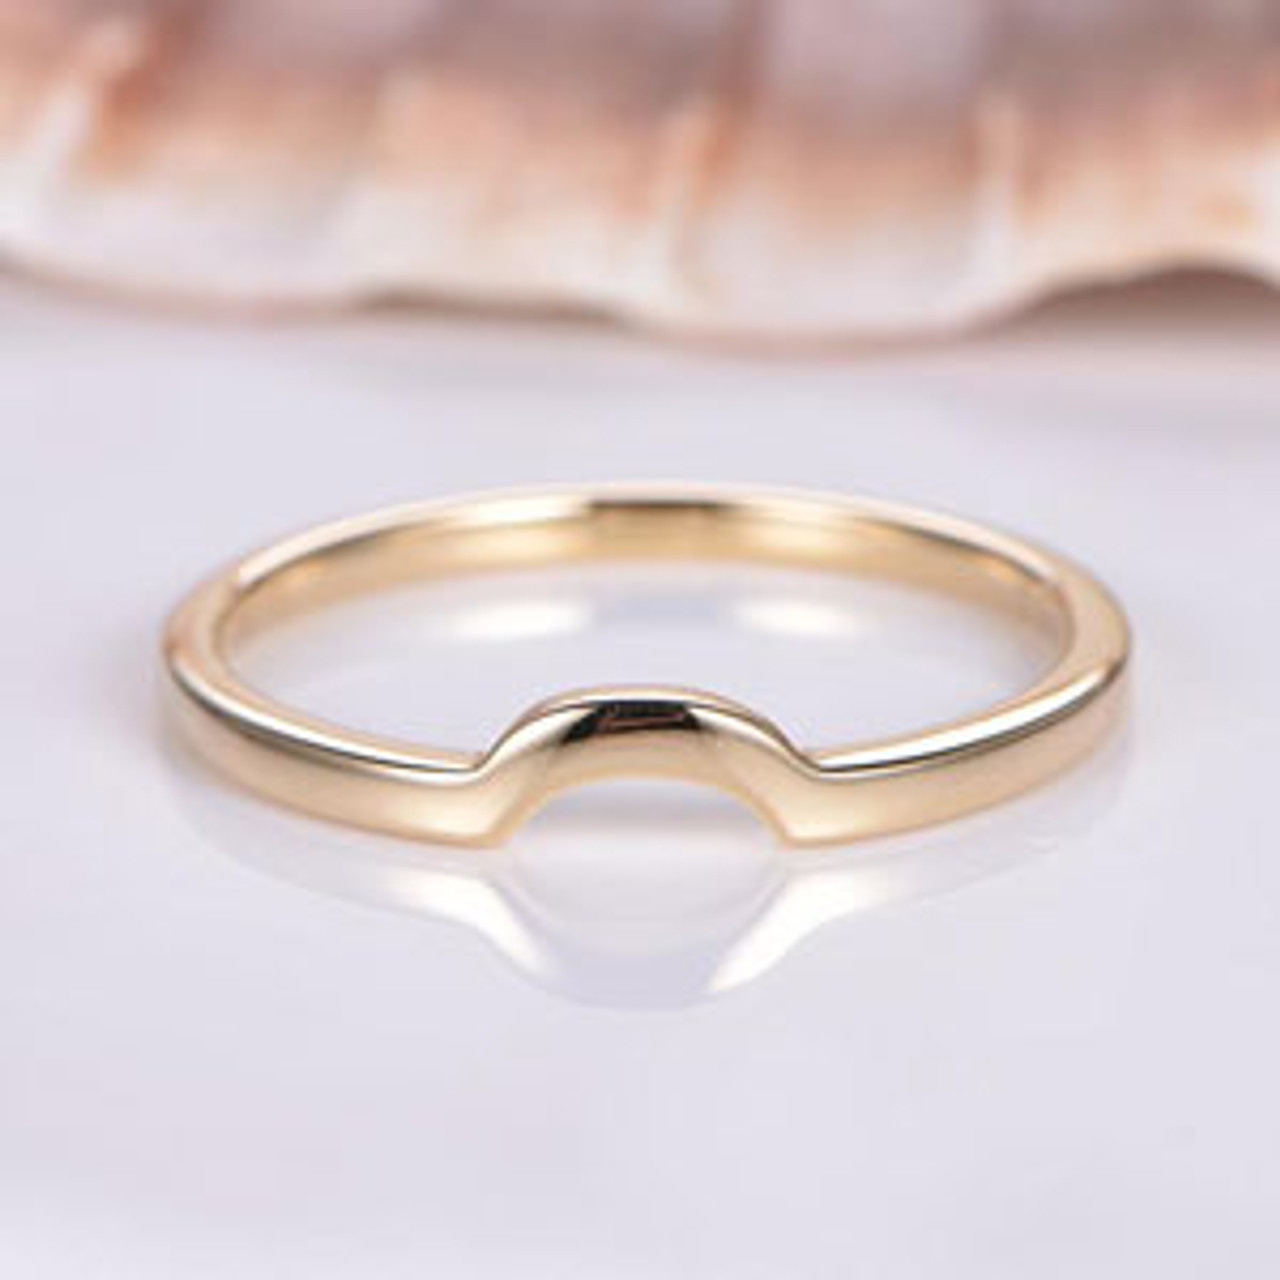 Plain Gold Curved Band $199